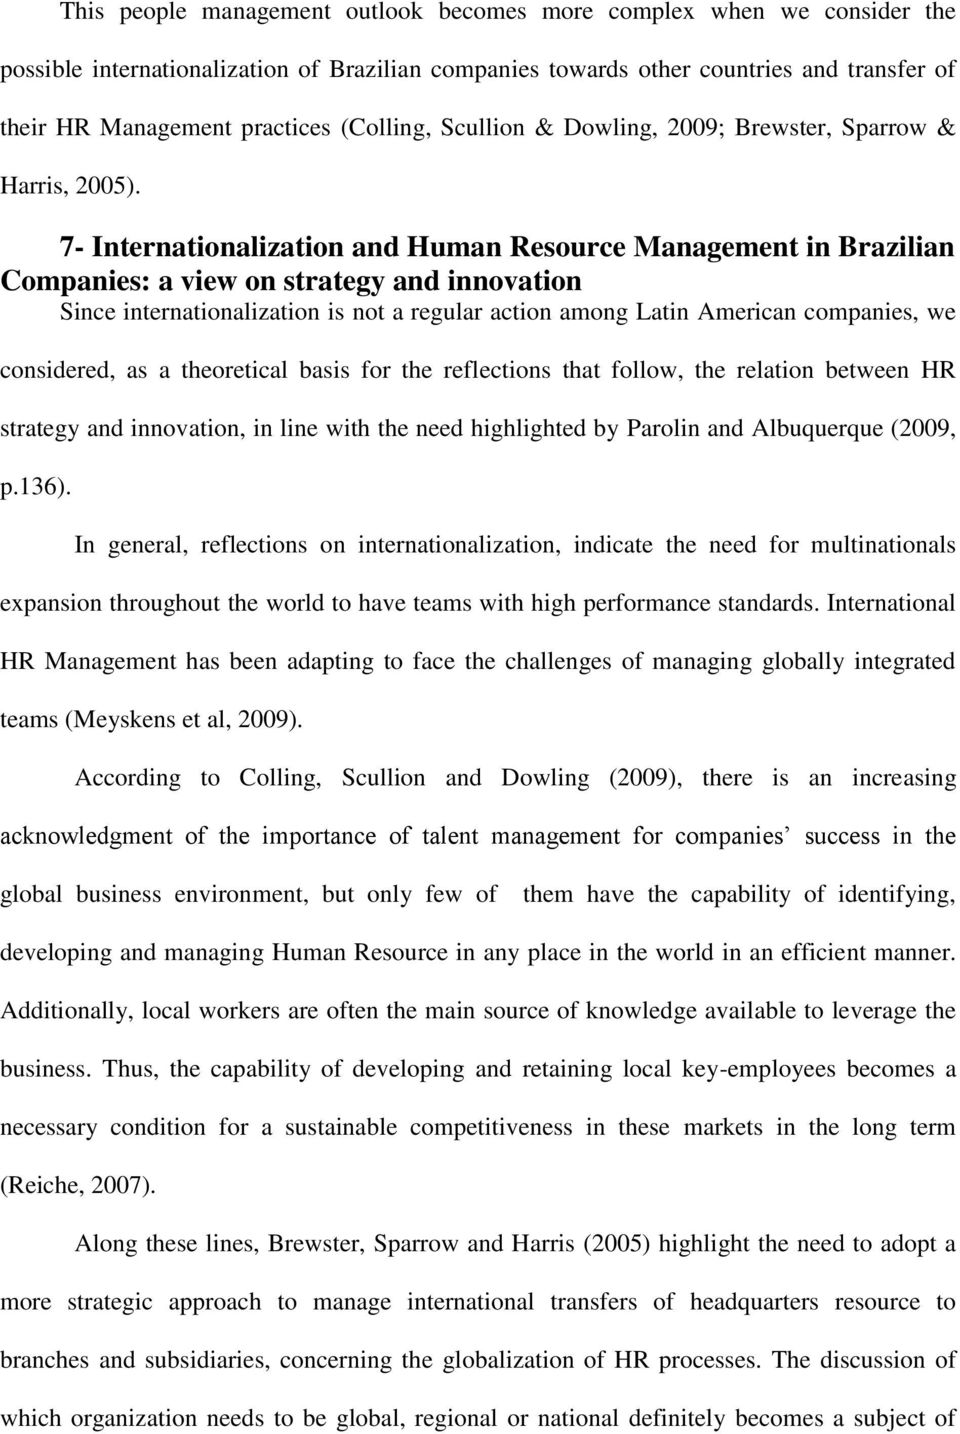 7- Internationalization and Human Resource Management in Brazilian Companies: a view on strategy and innovation Since internationalization is not a regular action among Latin American companies, we